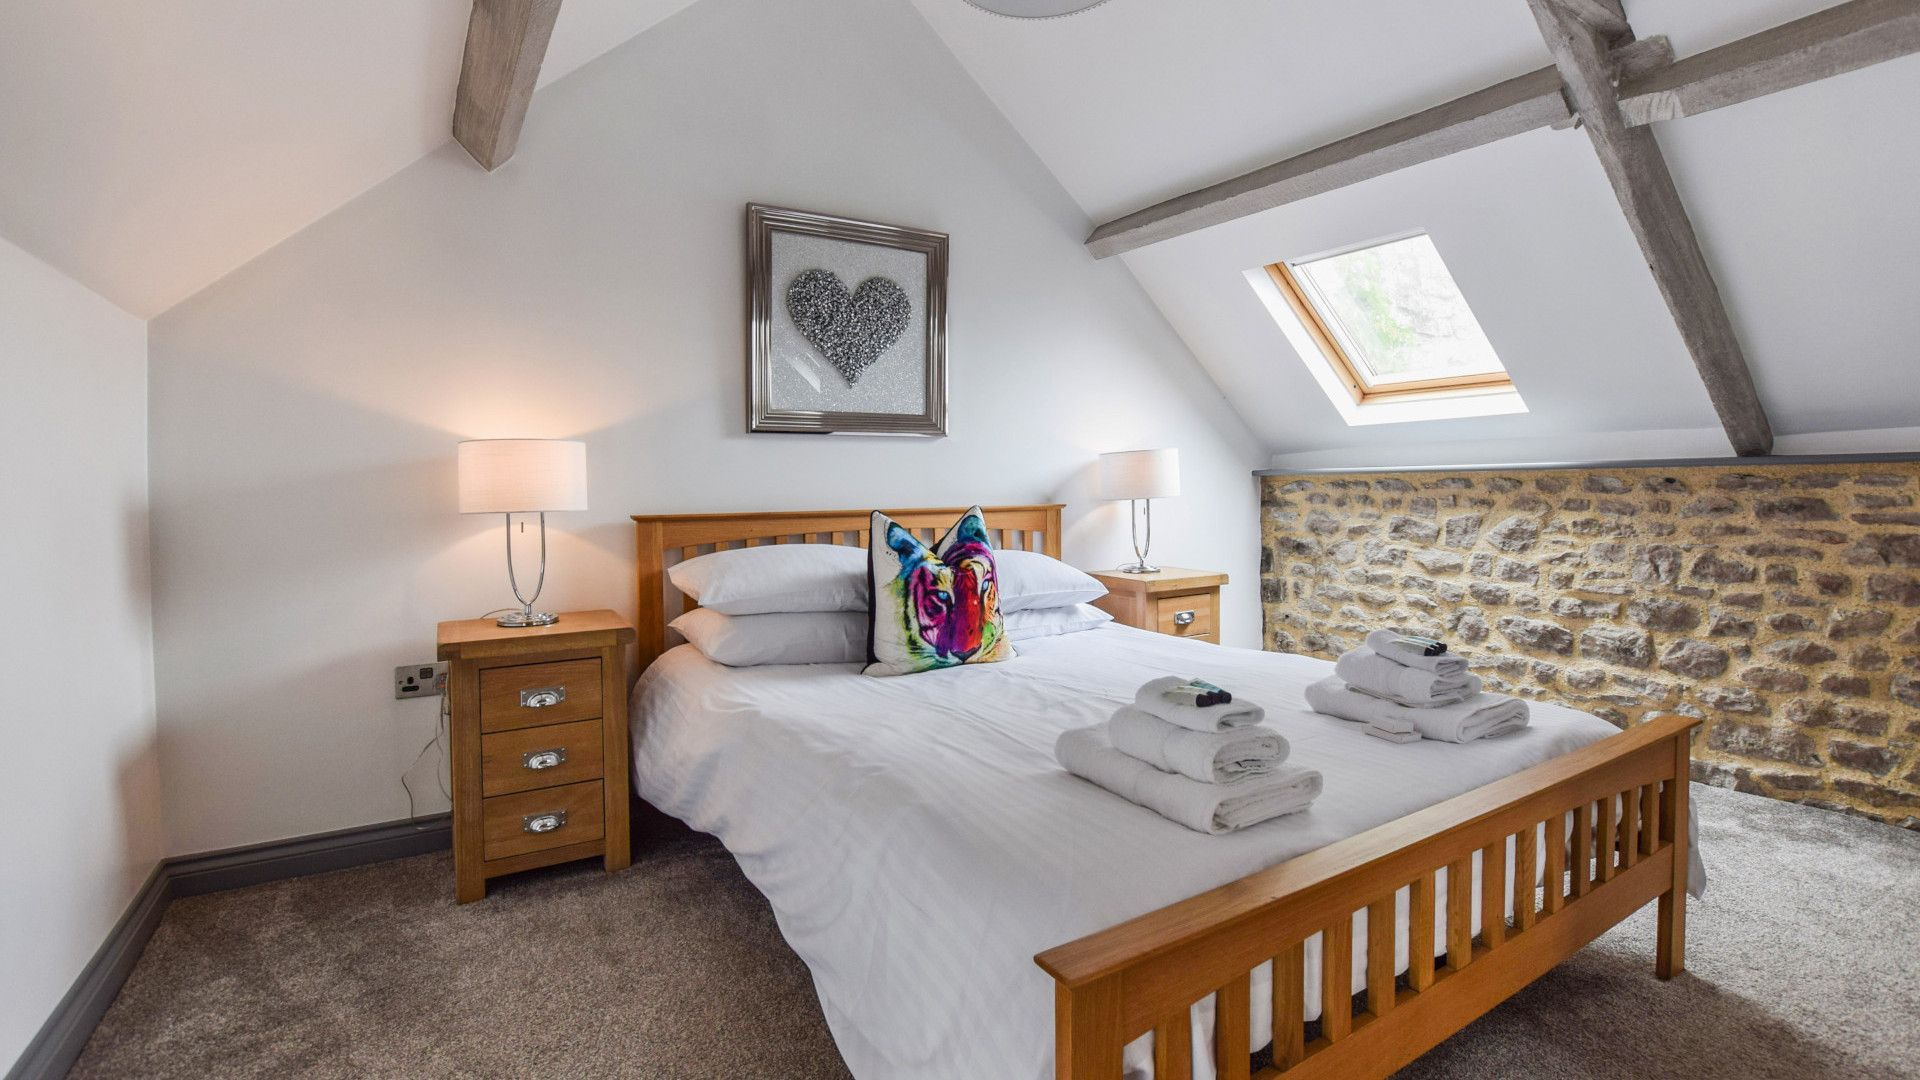 Bedroom 1 with King-size bed, Stable Cottage at Avon Farm, Bolthole Retreats